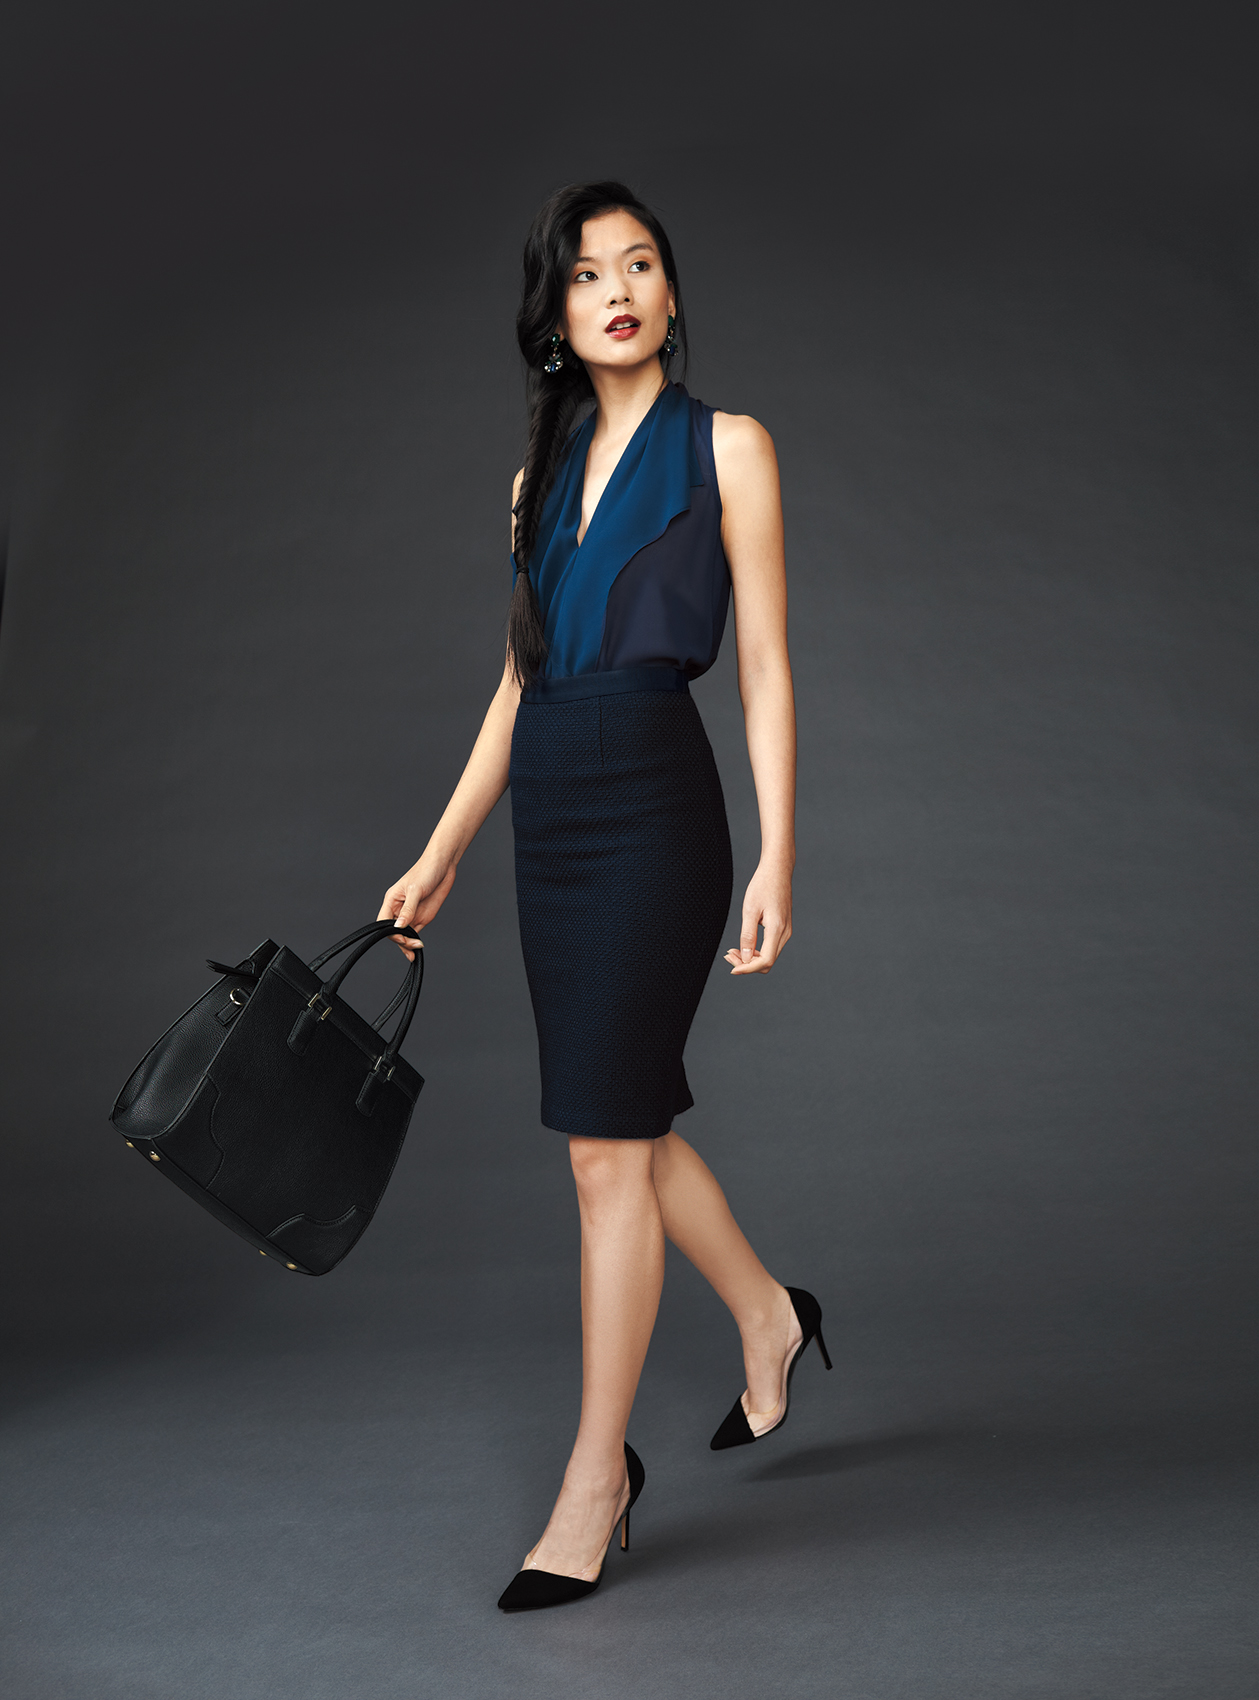 Model wearing blue blouse and navy pencil skirt.